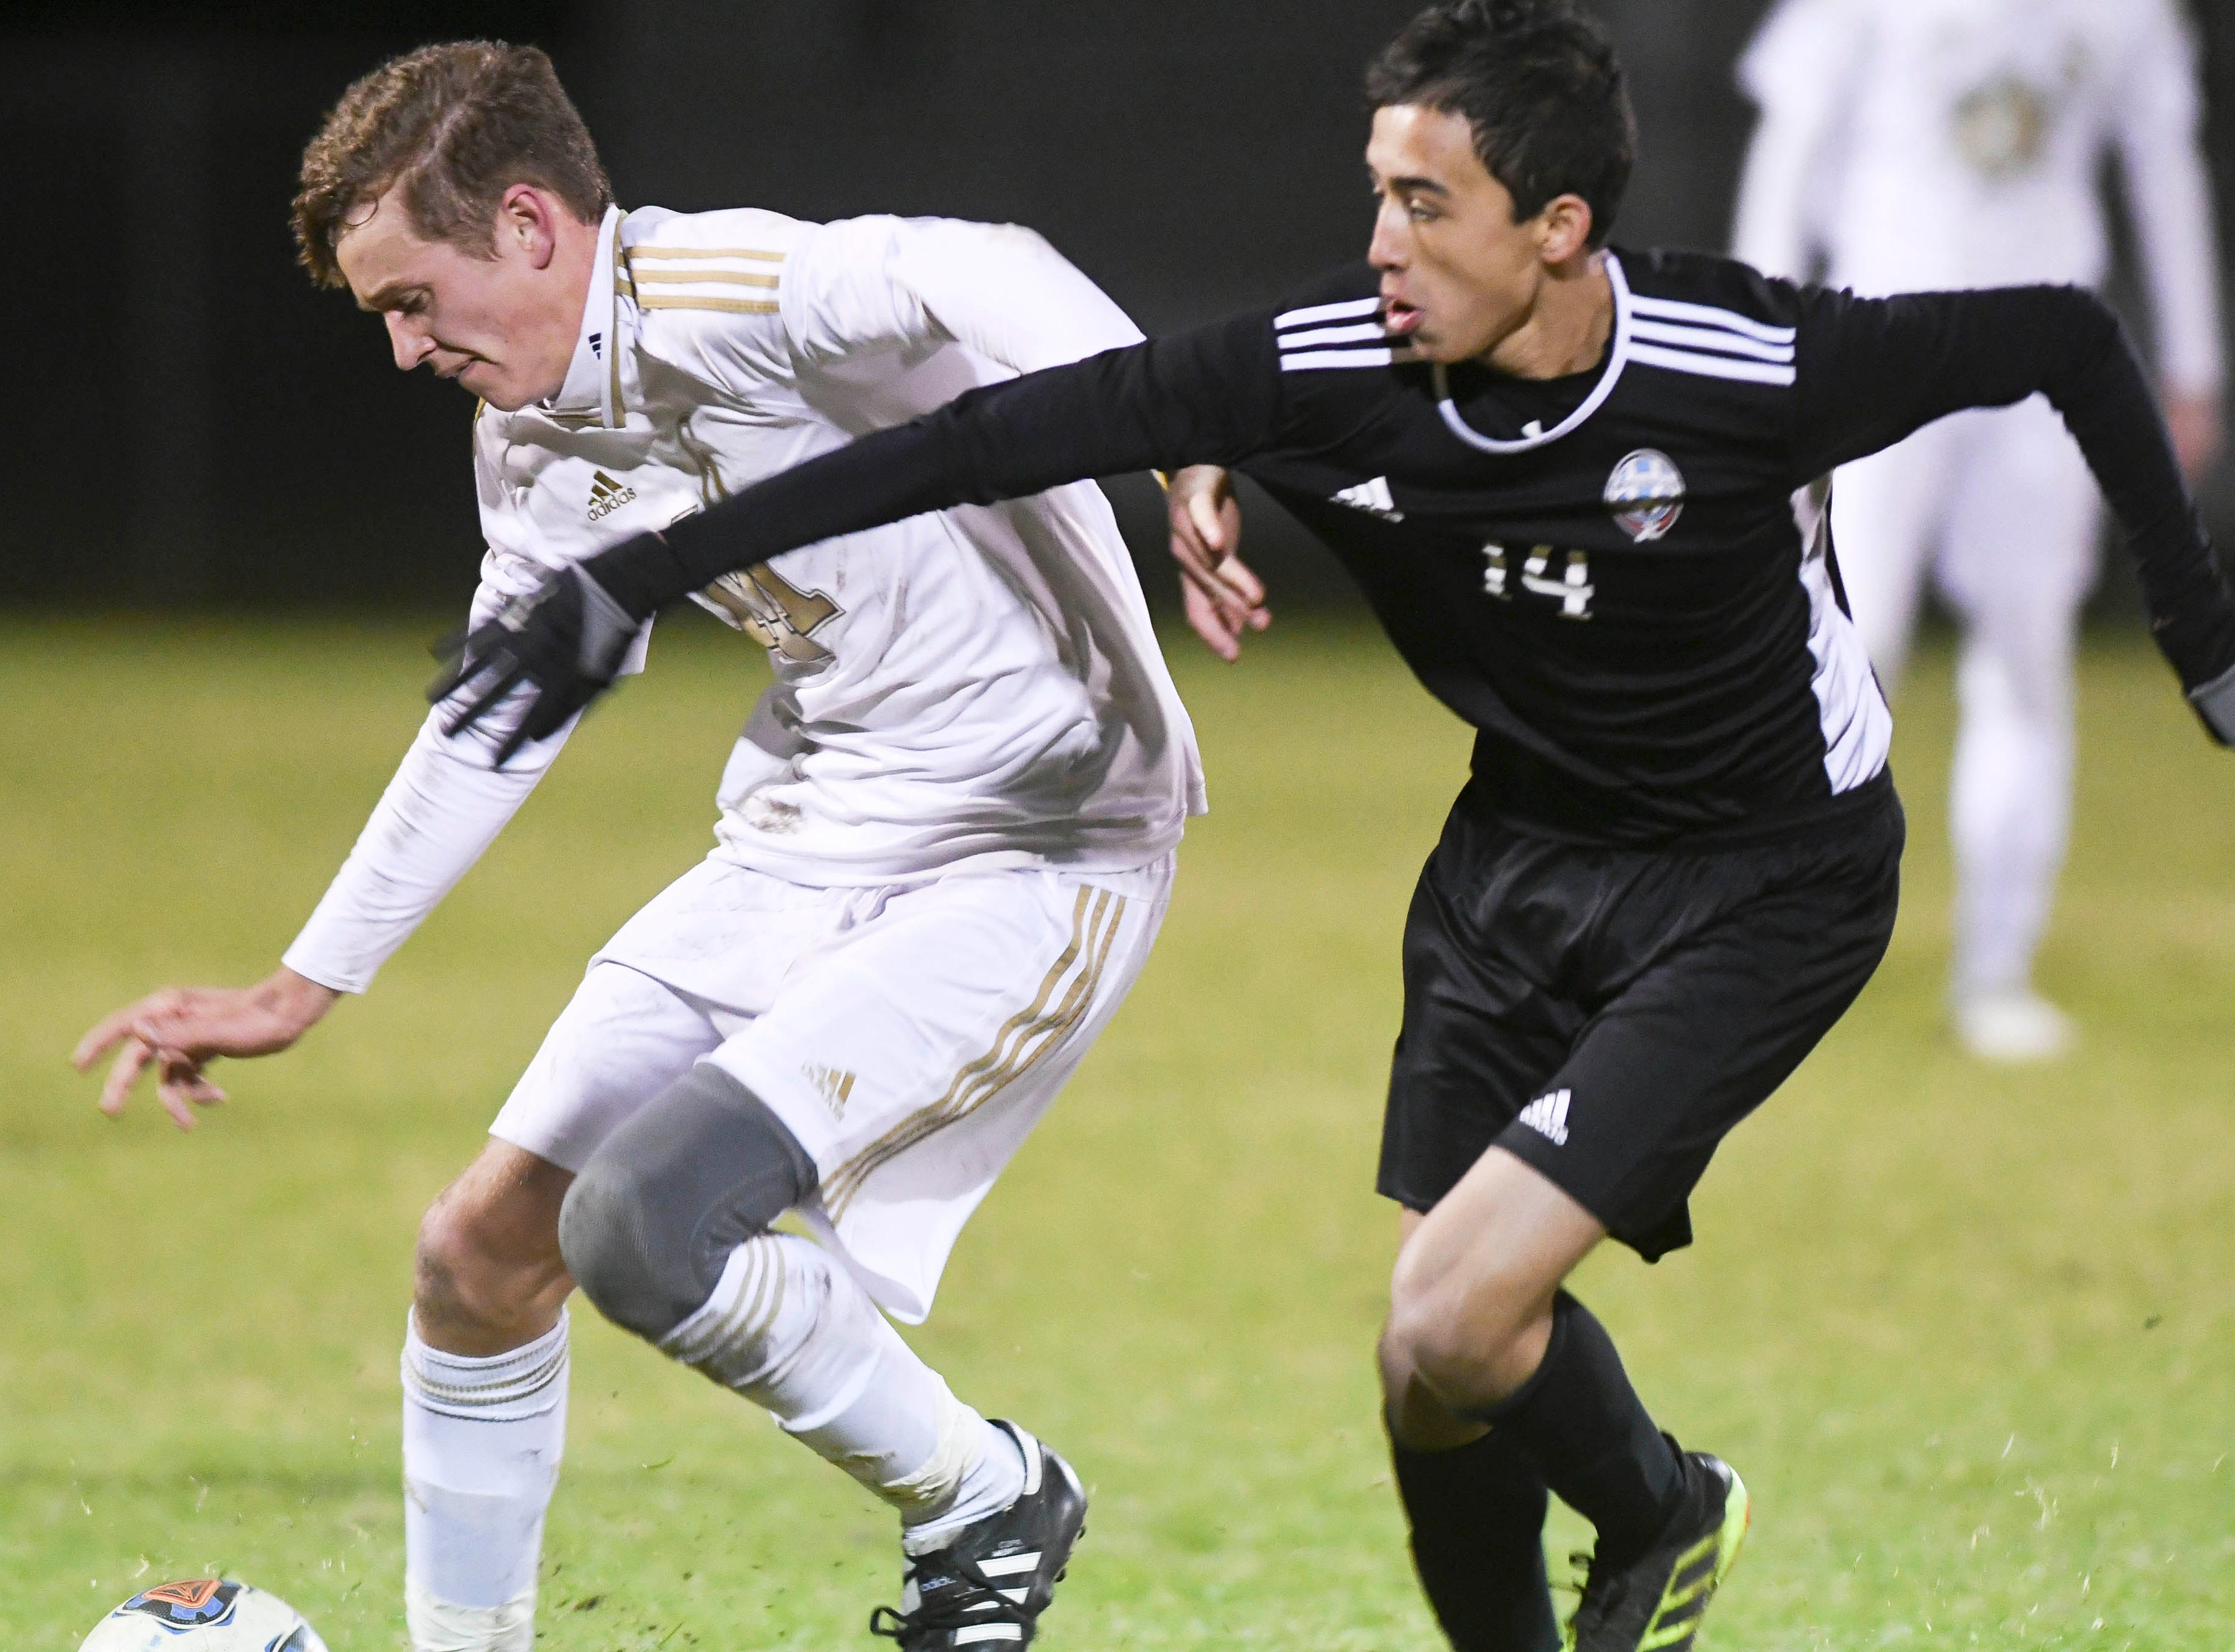 Dan Gerondidakis of Merritt Island and Luis Esteban Son of Rockledge battle for the ball  during Wednesday's District 12, Class 3A semifinal at McLarty Stadium